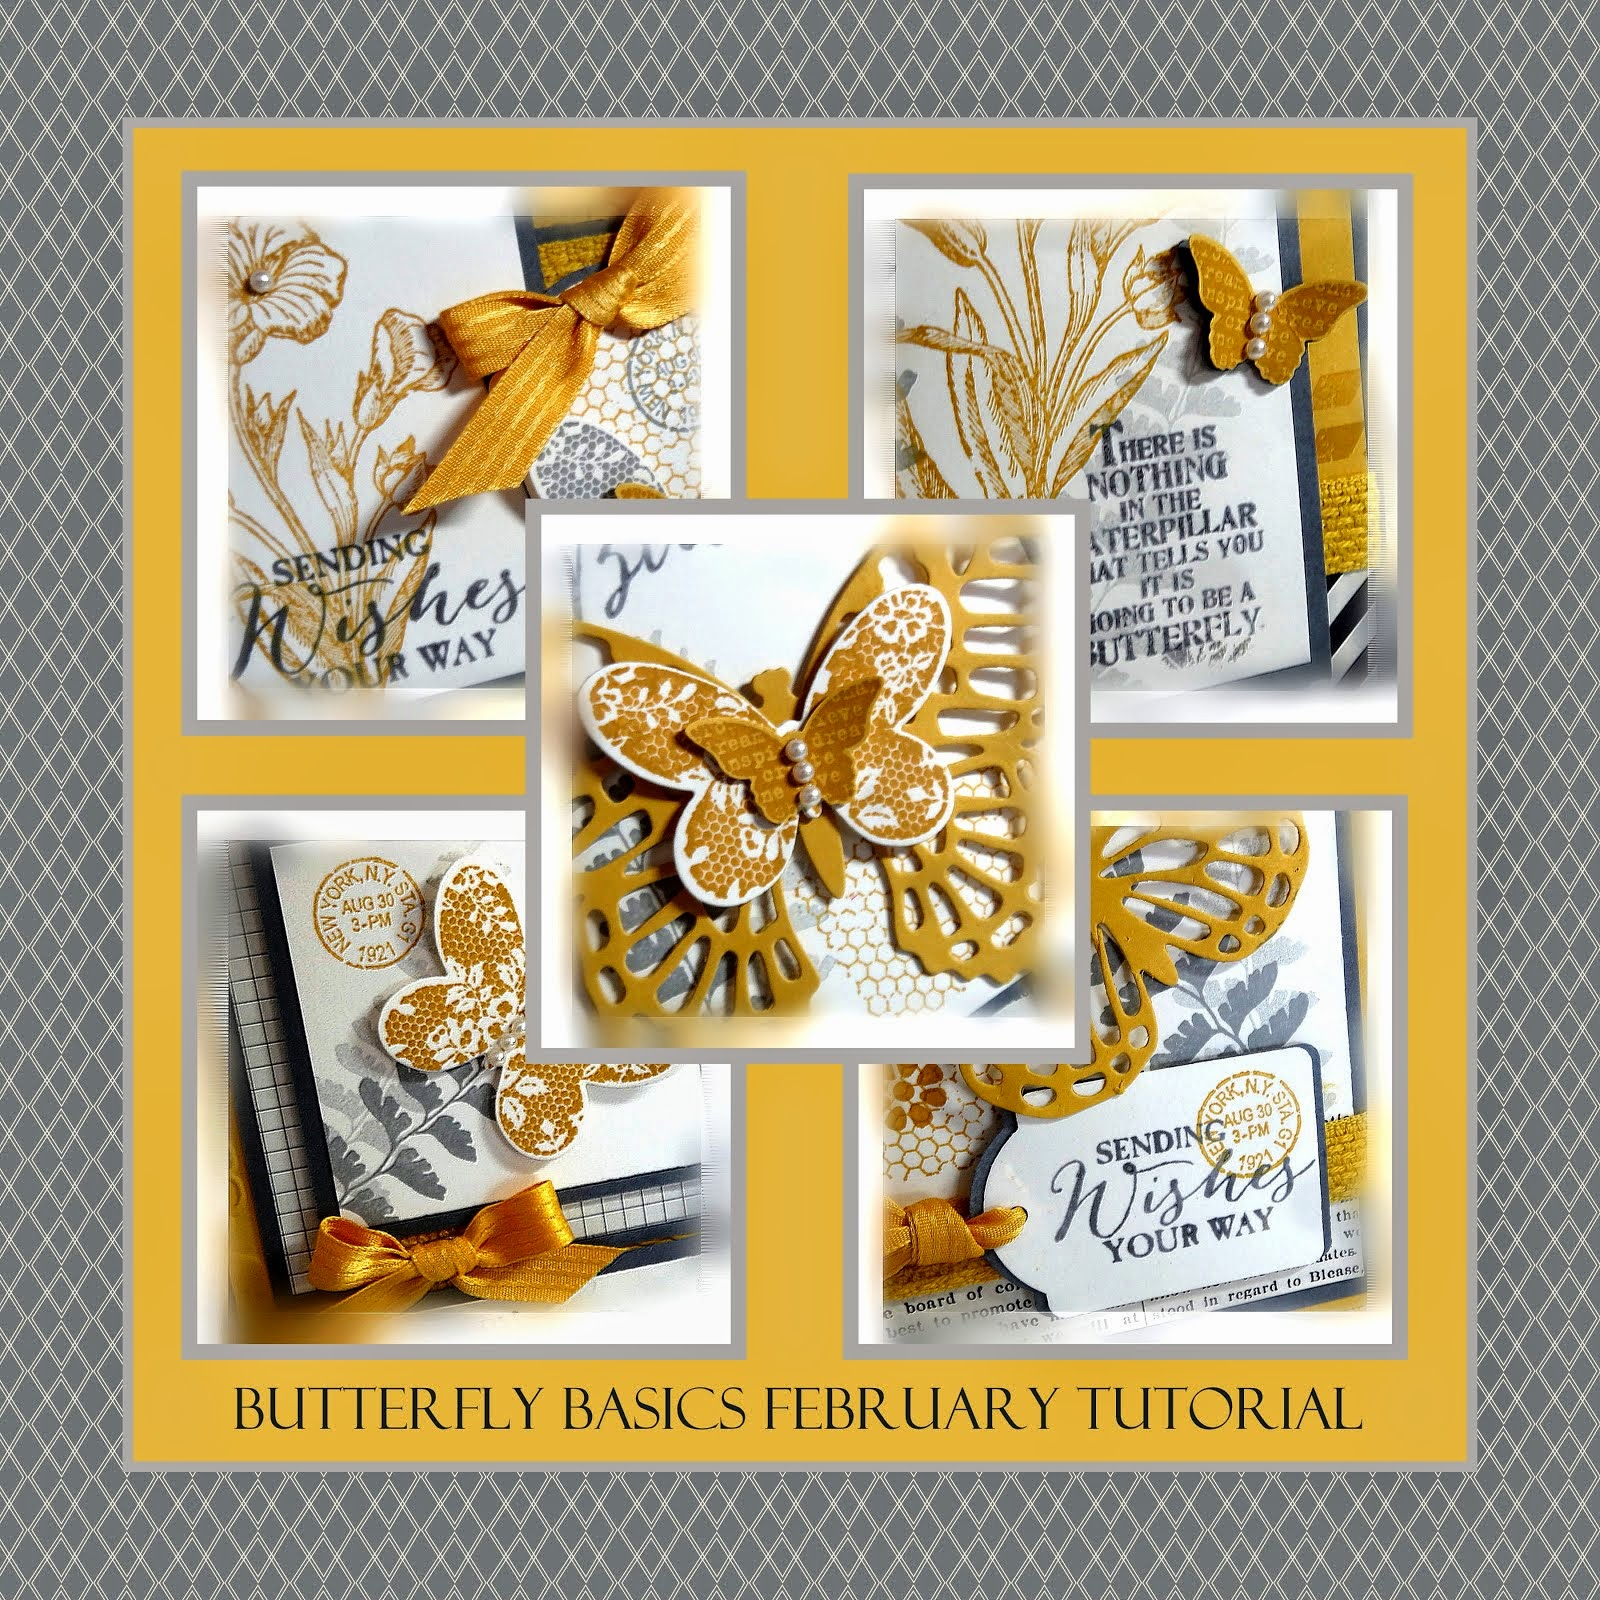 February 2015 Butterfly BasicsTutorial